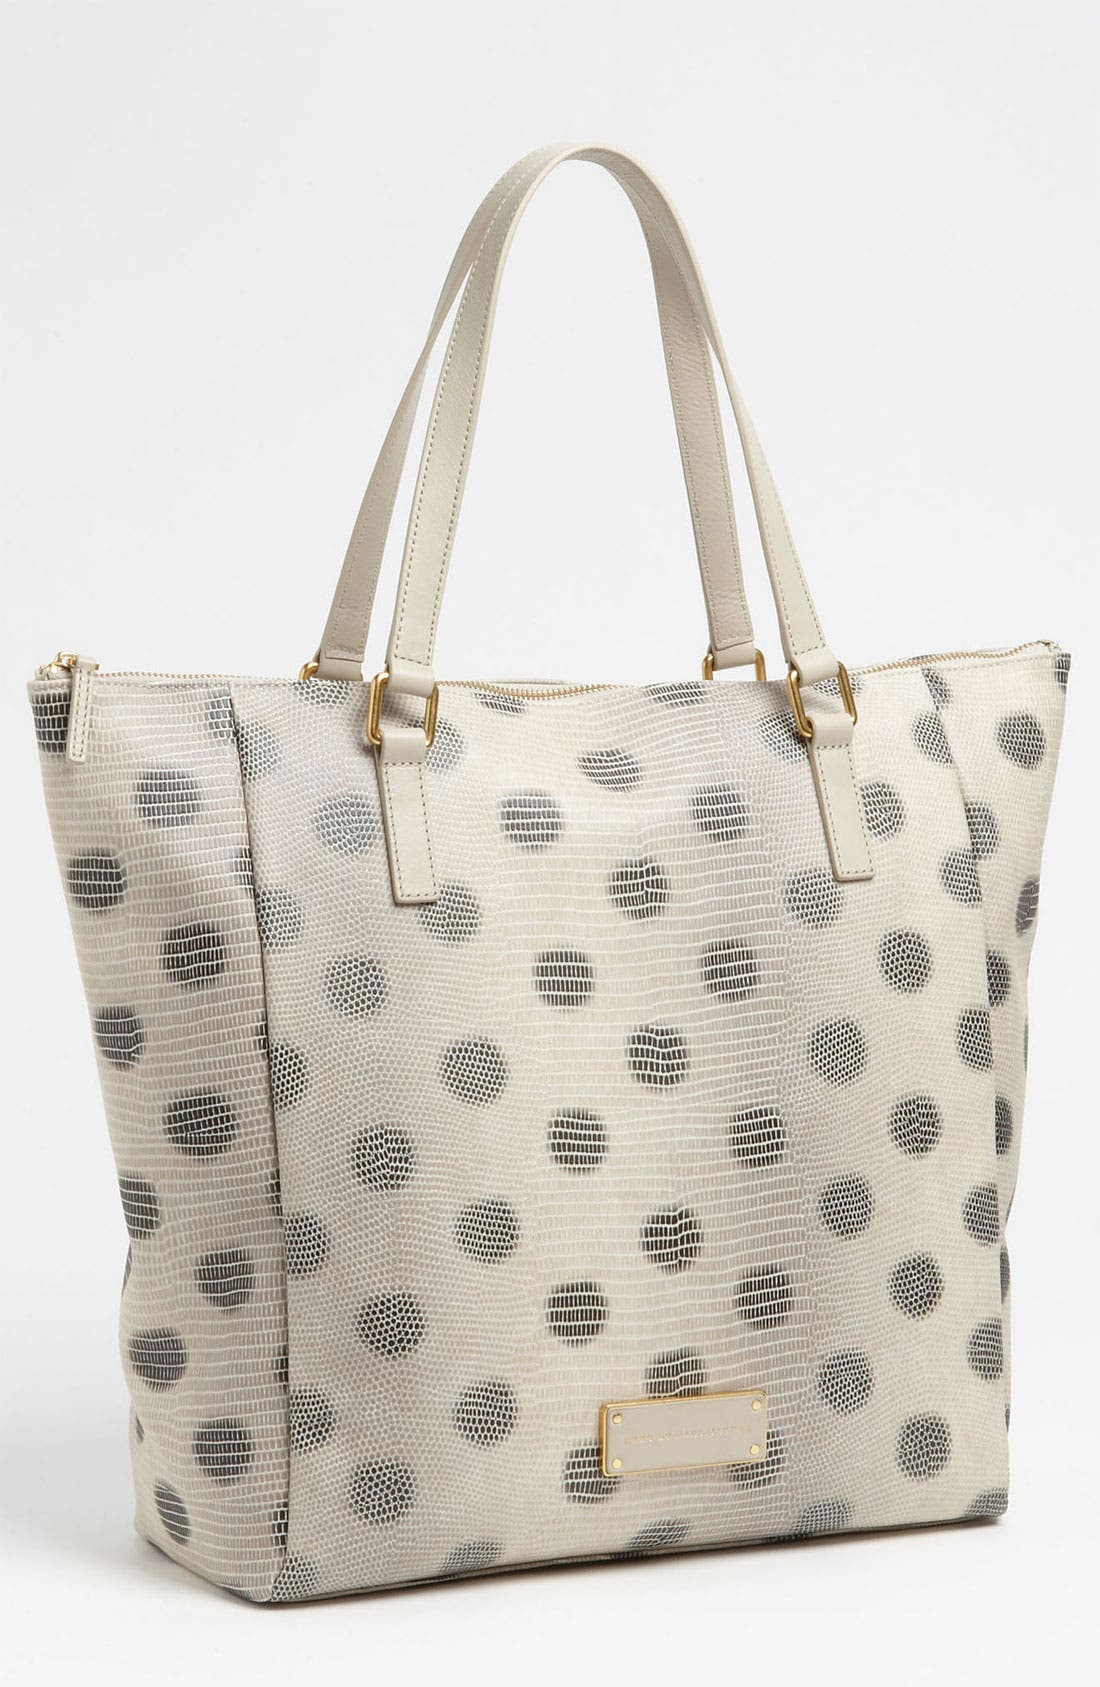 Main Image - MARC BY MARC JACOBS 'Take Me - Lizzie Spot' Embossed Tote